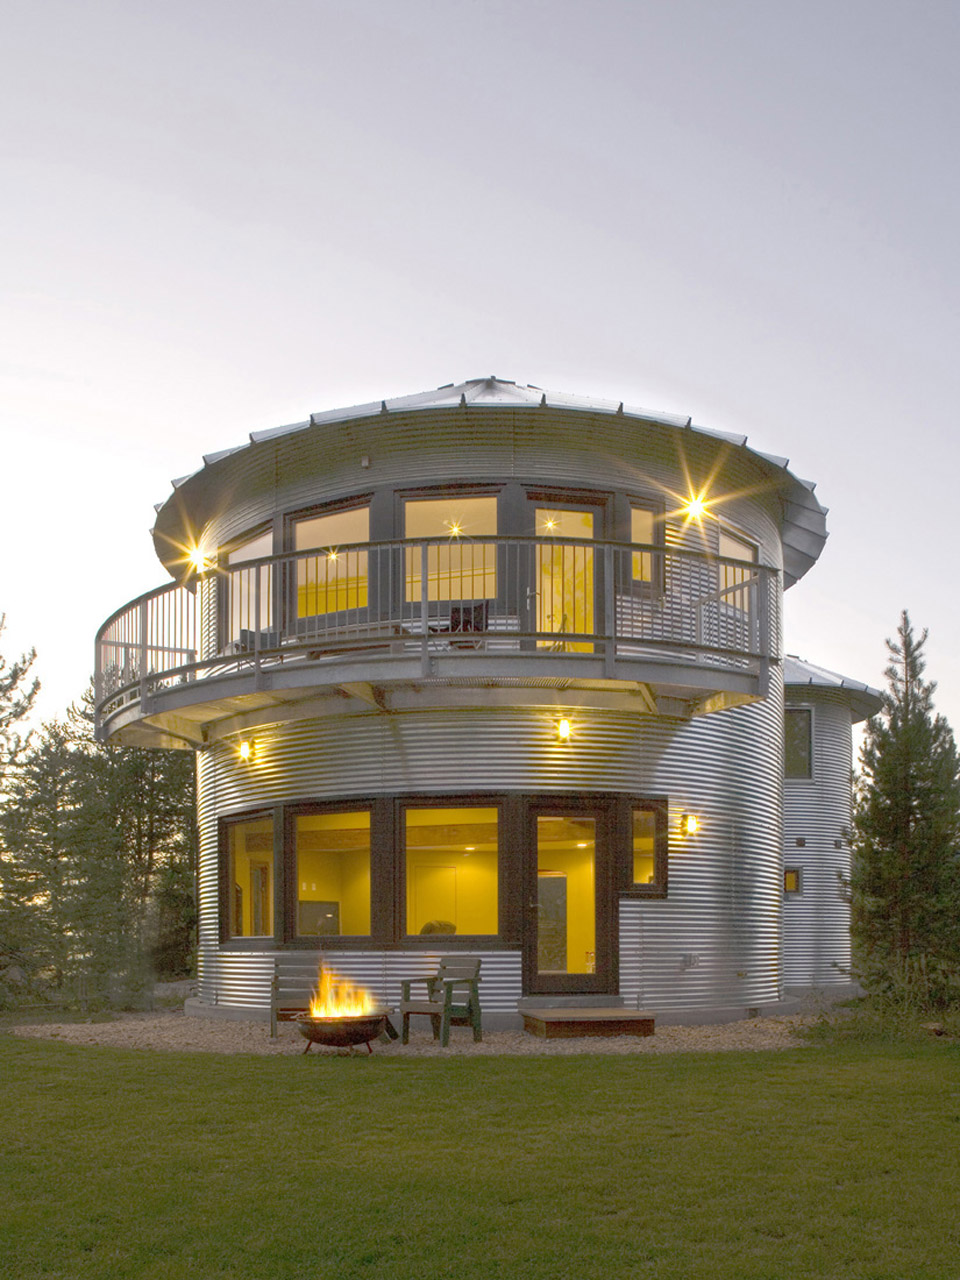 Monte silo for Inexpensive house designs